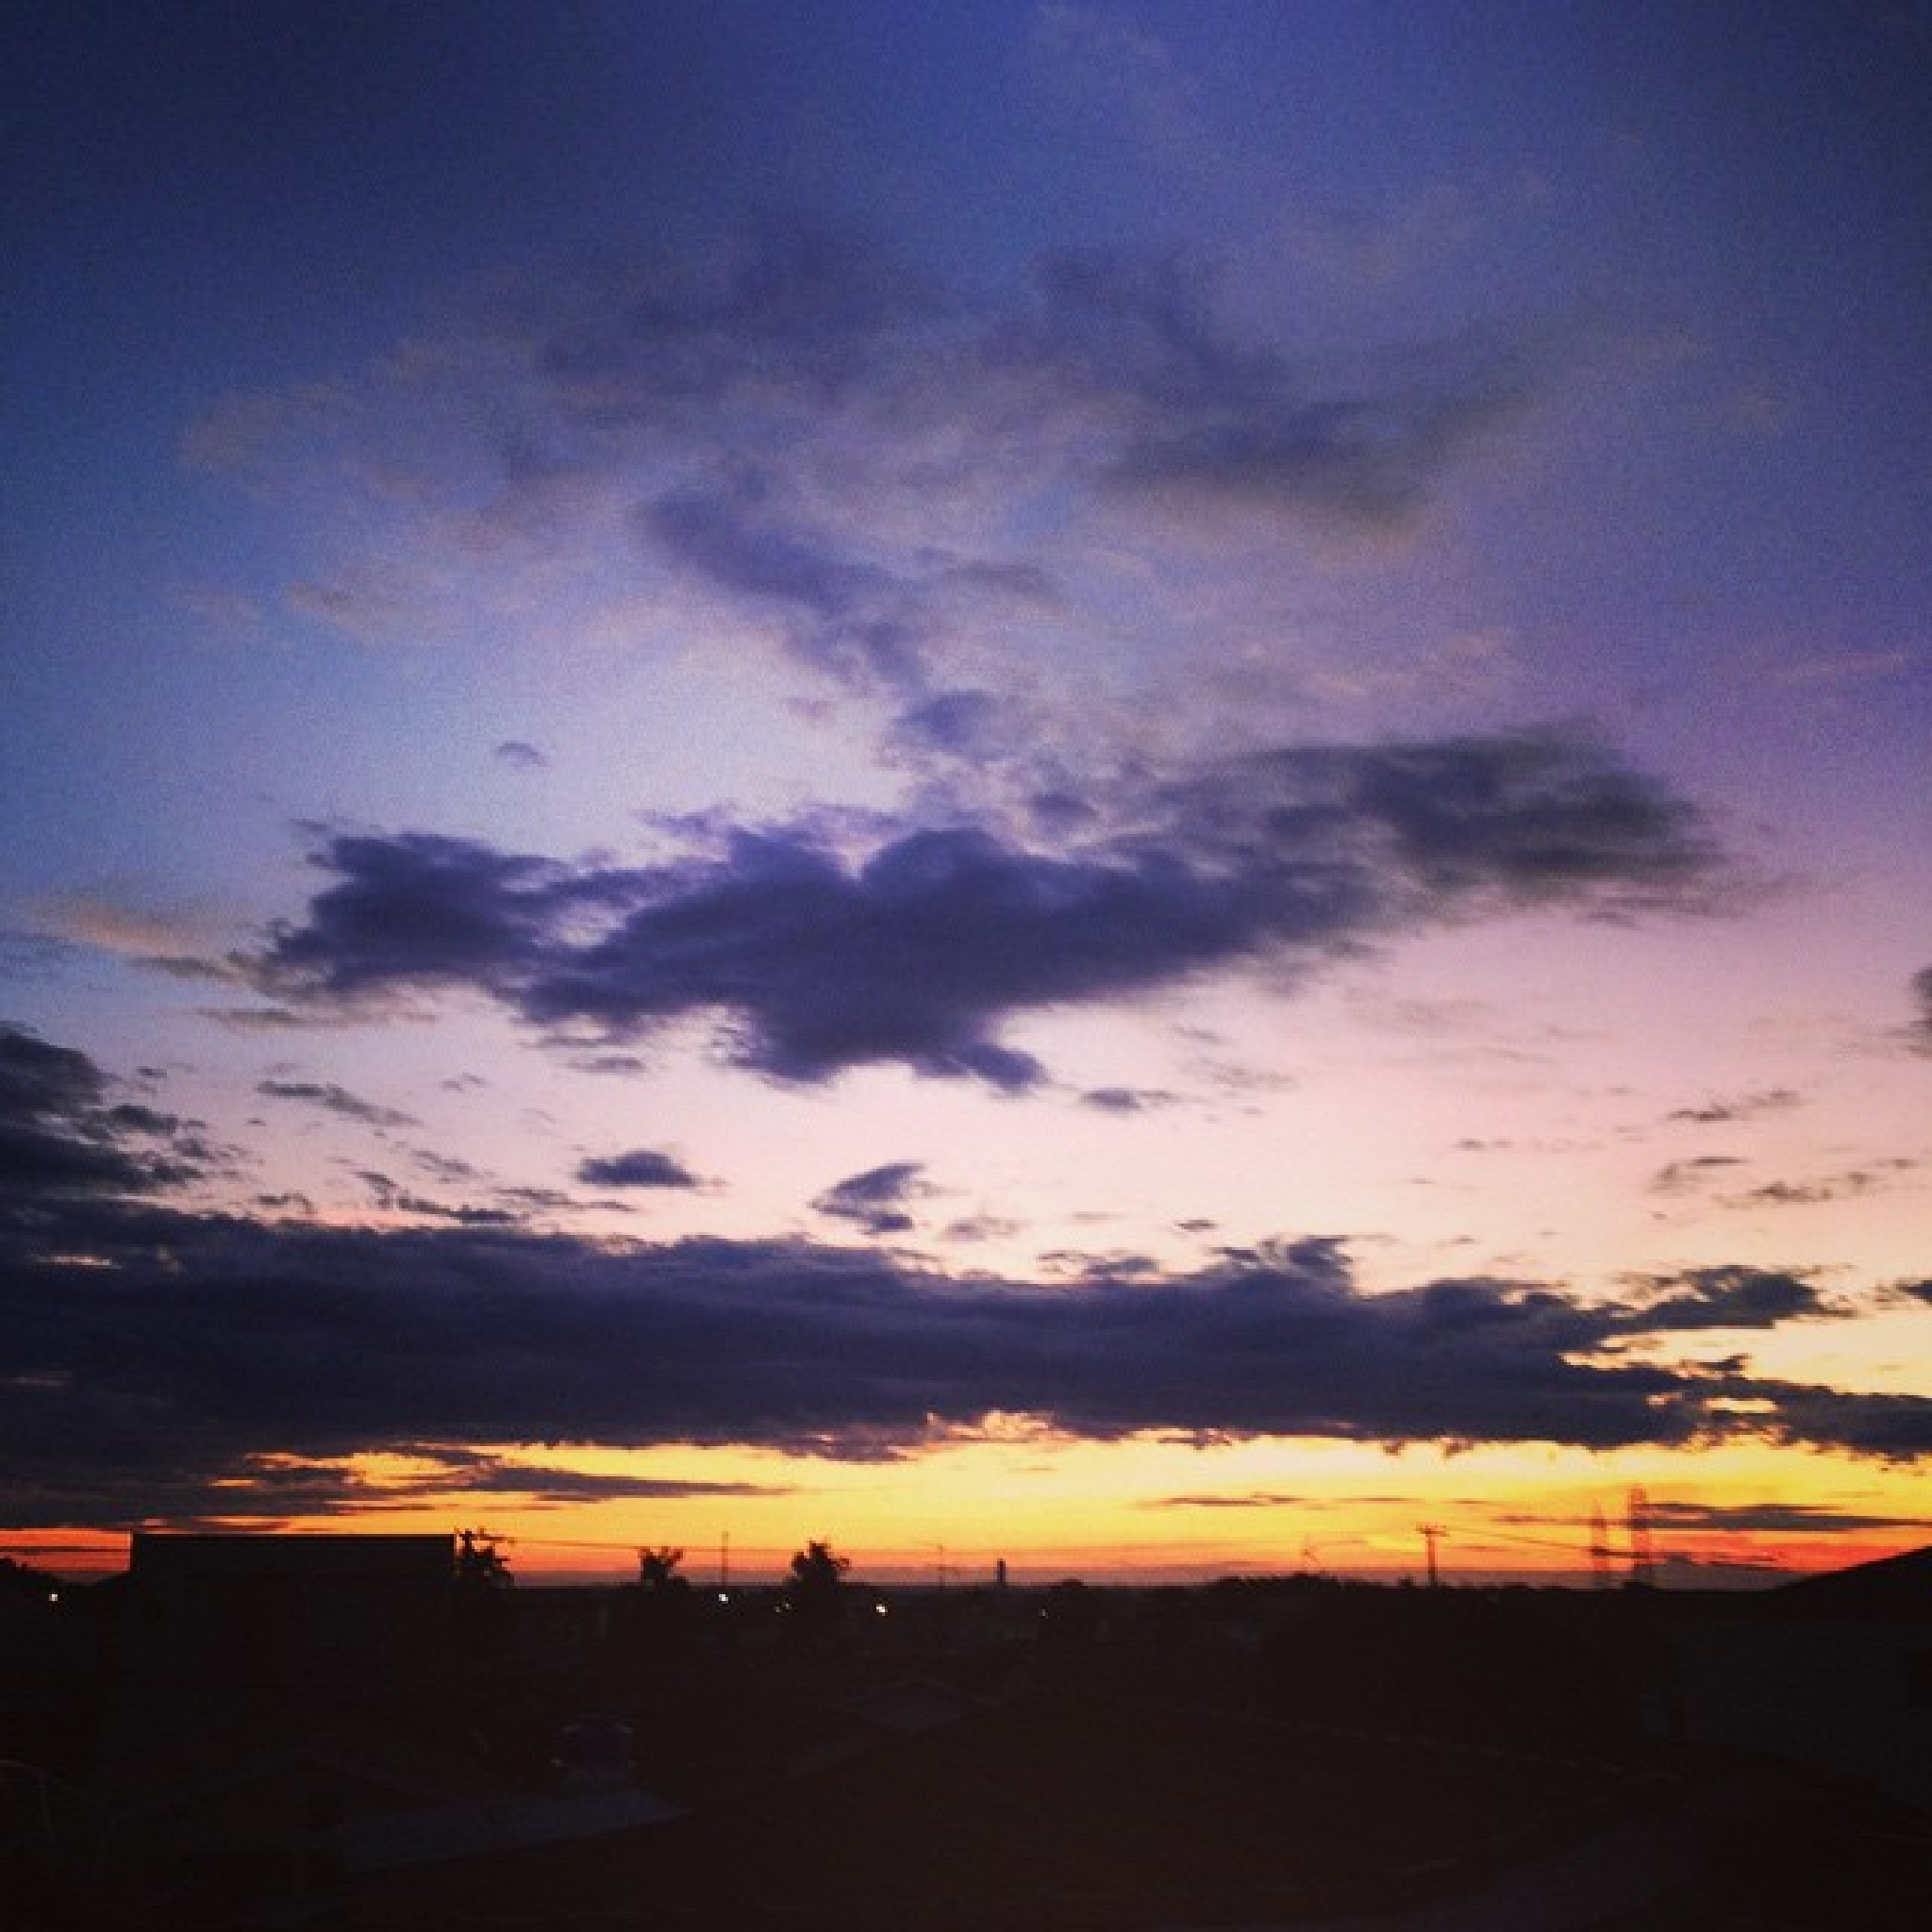 late afternoon by Claudinei_F7